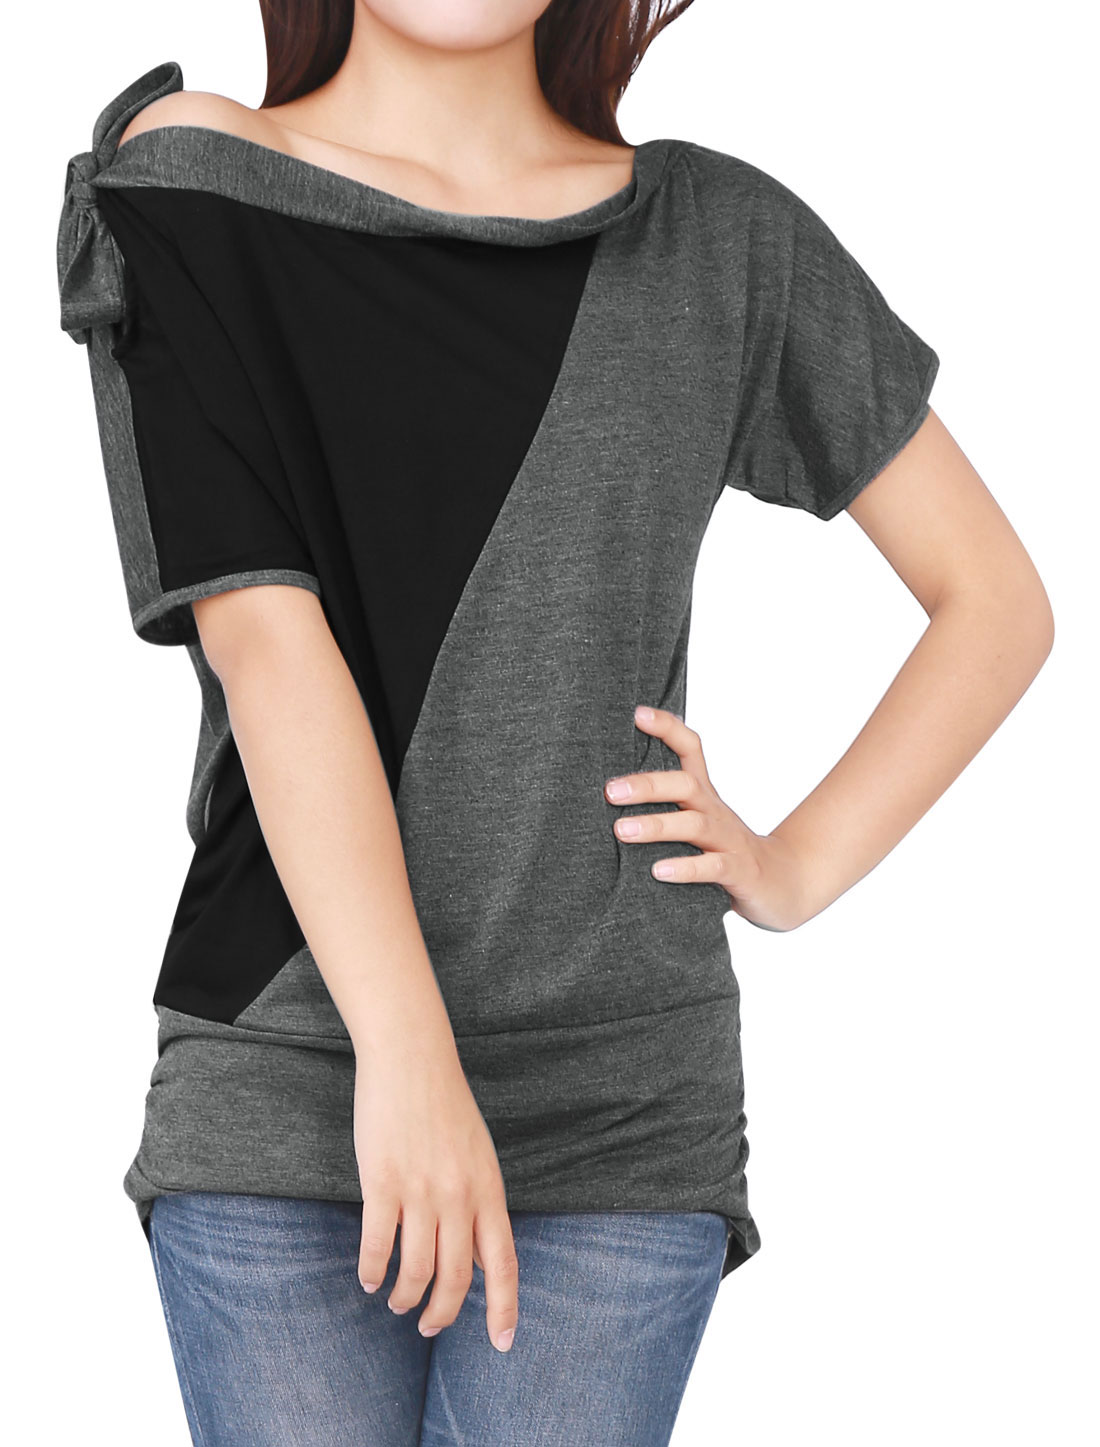 Women Black Gray Pullover Bat Sleeve Shirt Loose Top L